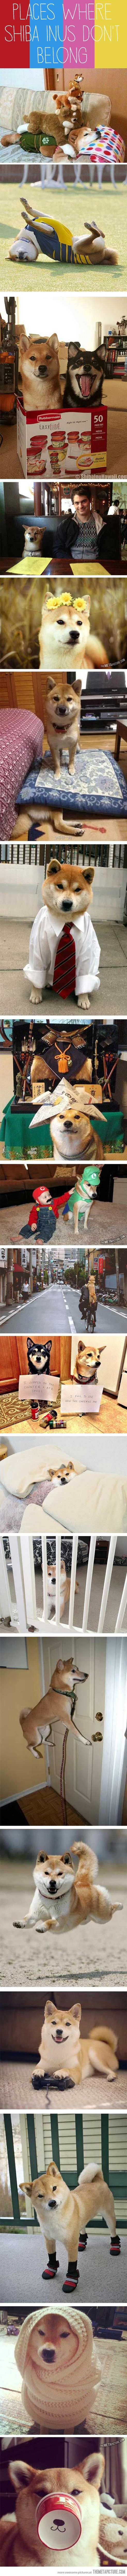 """Places Shiba Inus don't belong :3 … I would hope they weren't in each situation for too long~ ^^"""""""""""""""""""